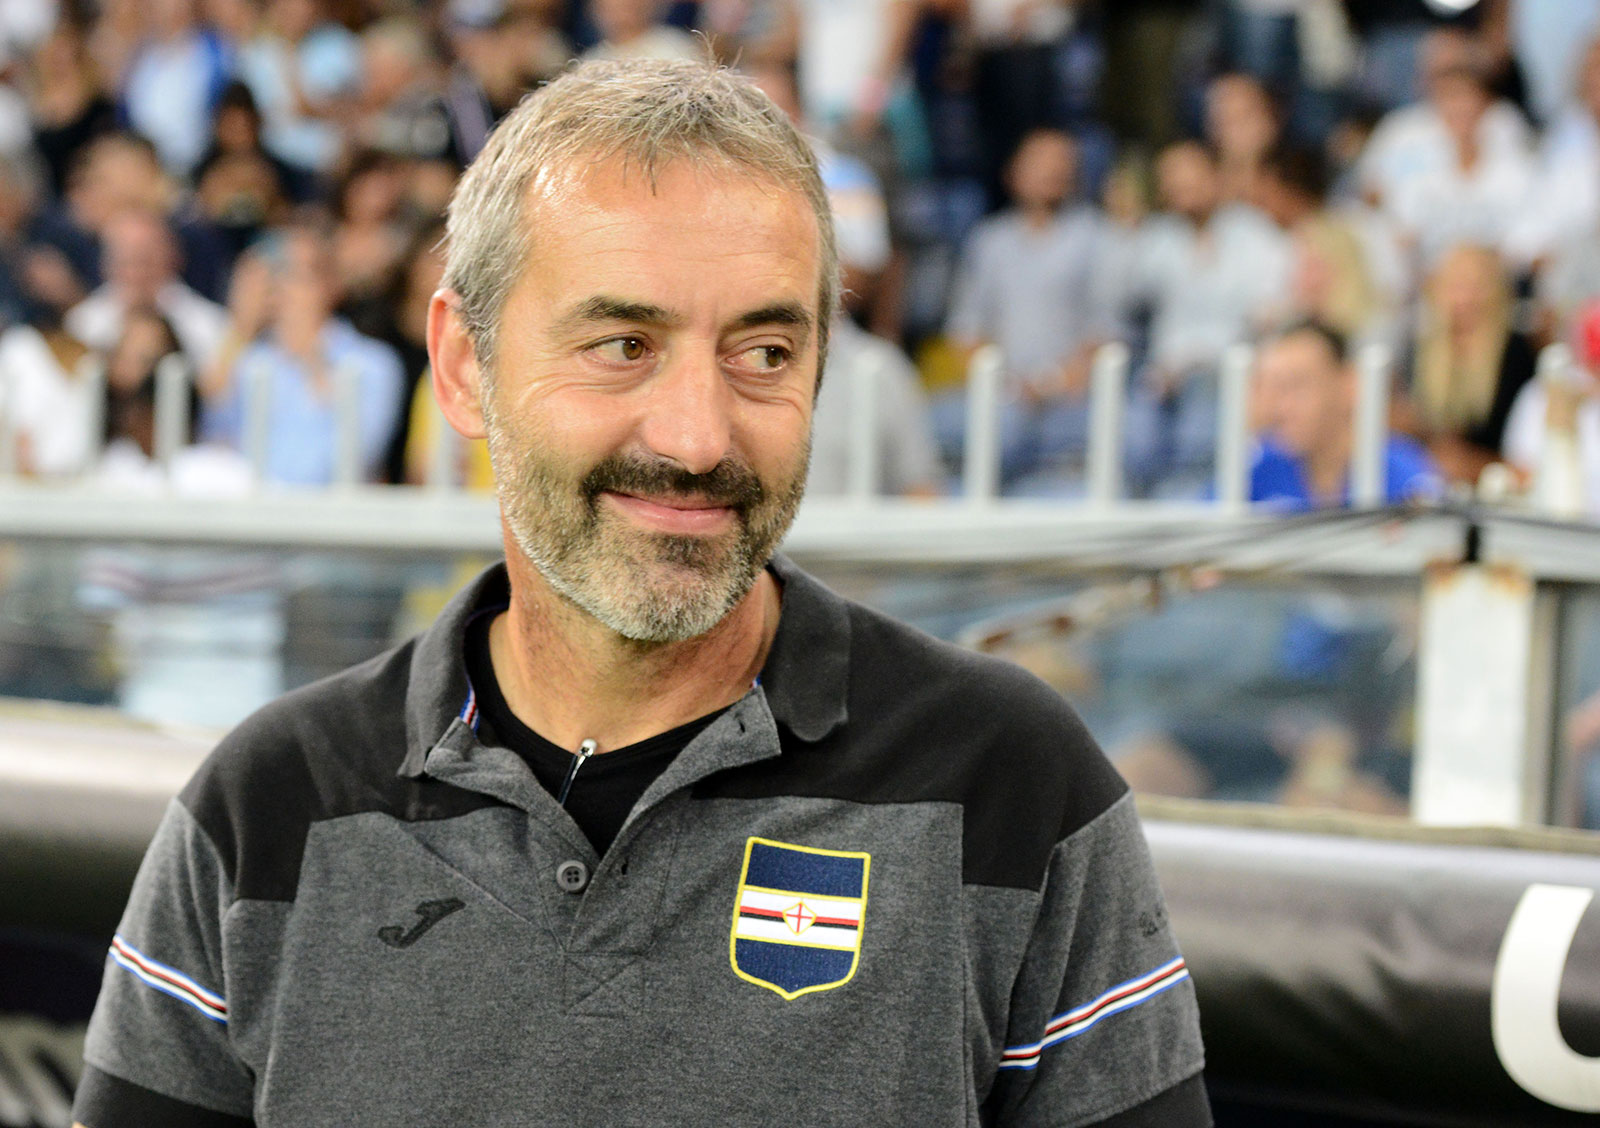 Marco Giampaolo during Sampdoria-Inter at Stadio Luigi Ferraris on September 22, 2018. (Photo by Paolo Rattini/Getty Images)